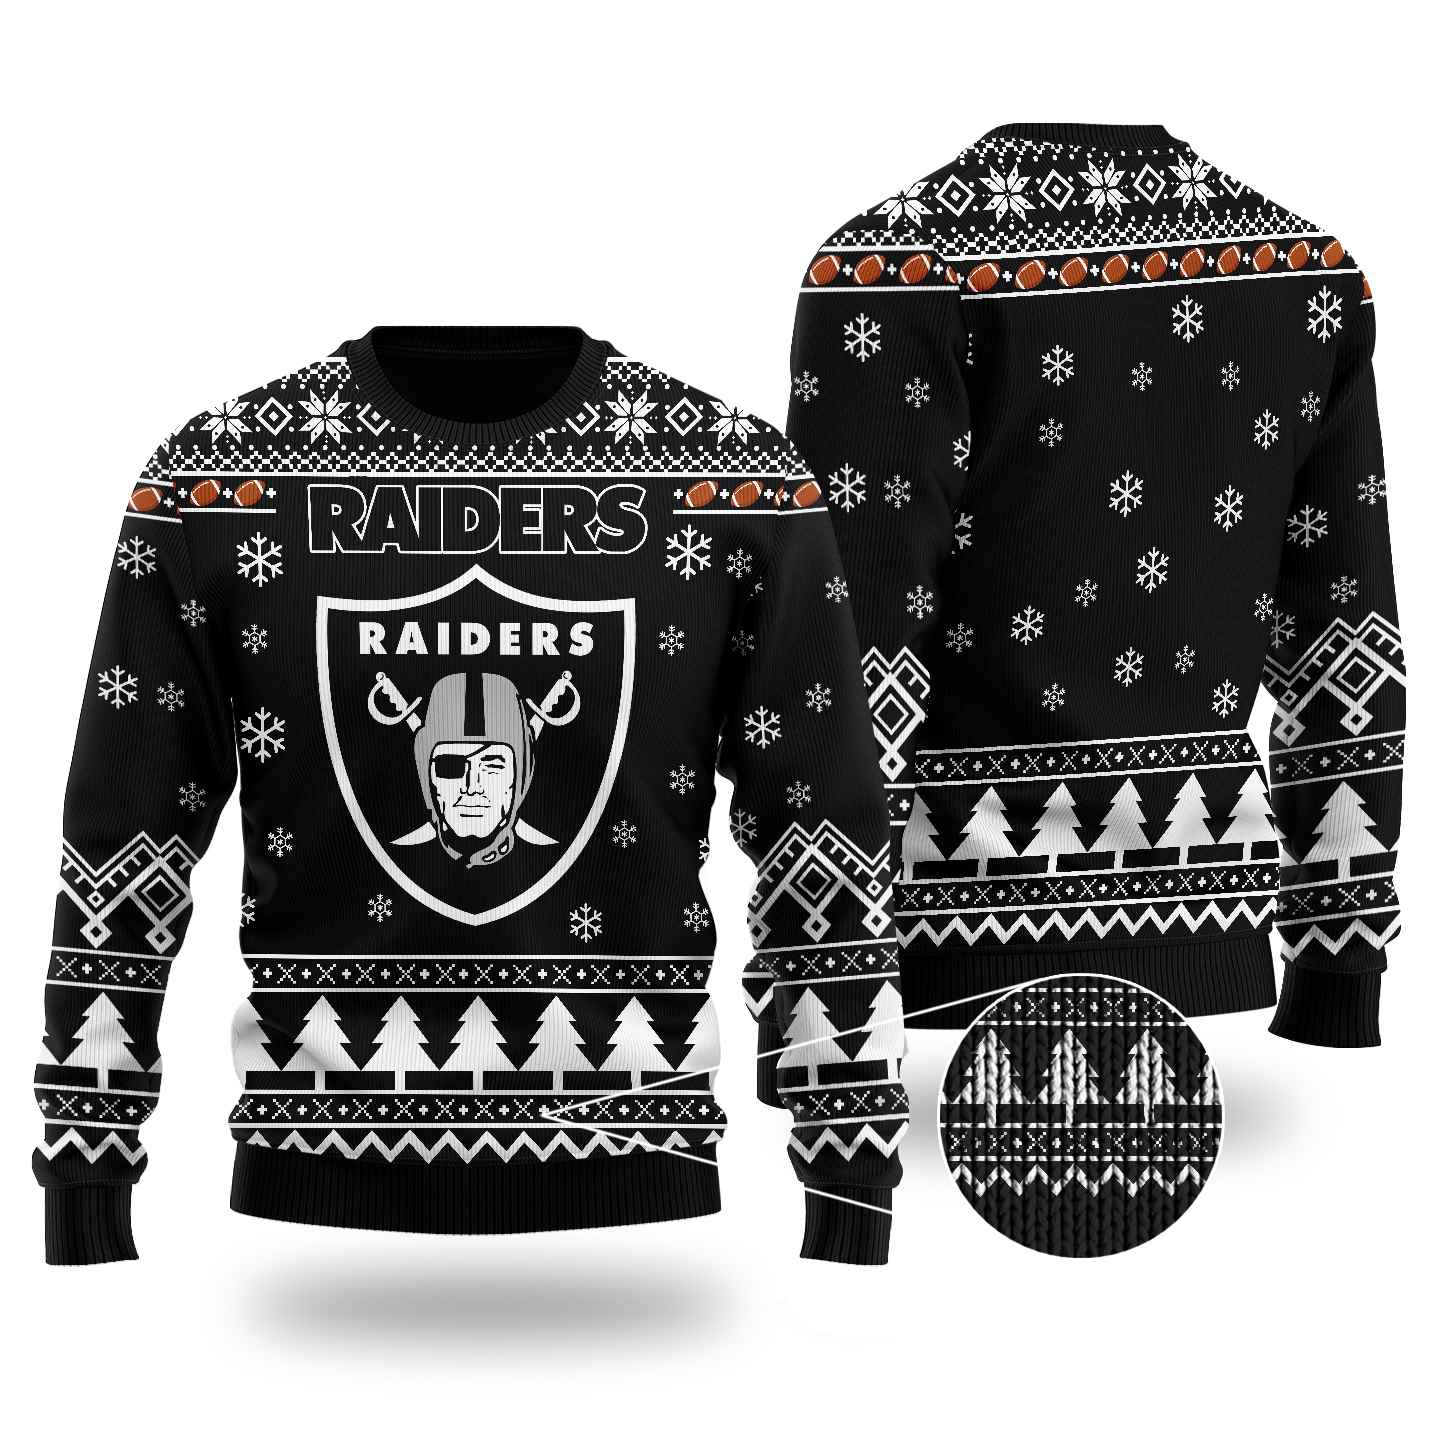 Nfl Oakland Raiders Chibi Ugly Christmas Sweater Wool Material